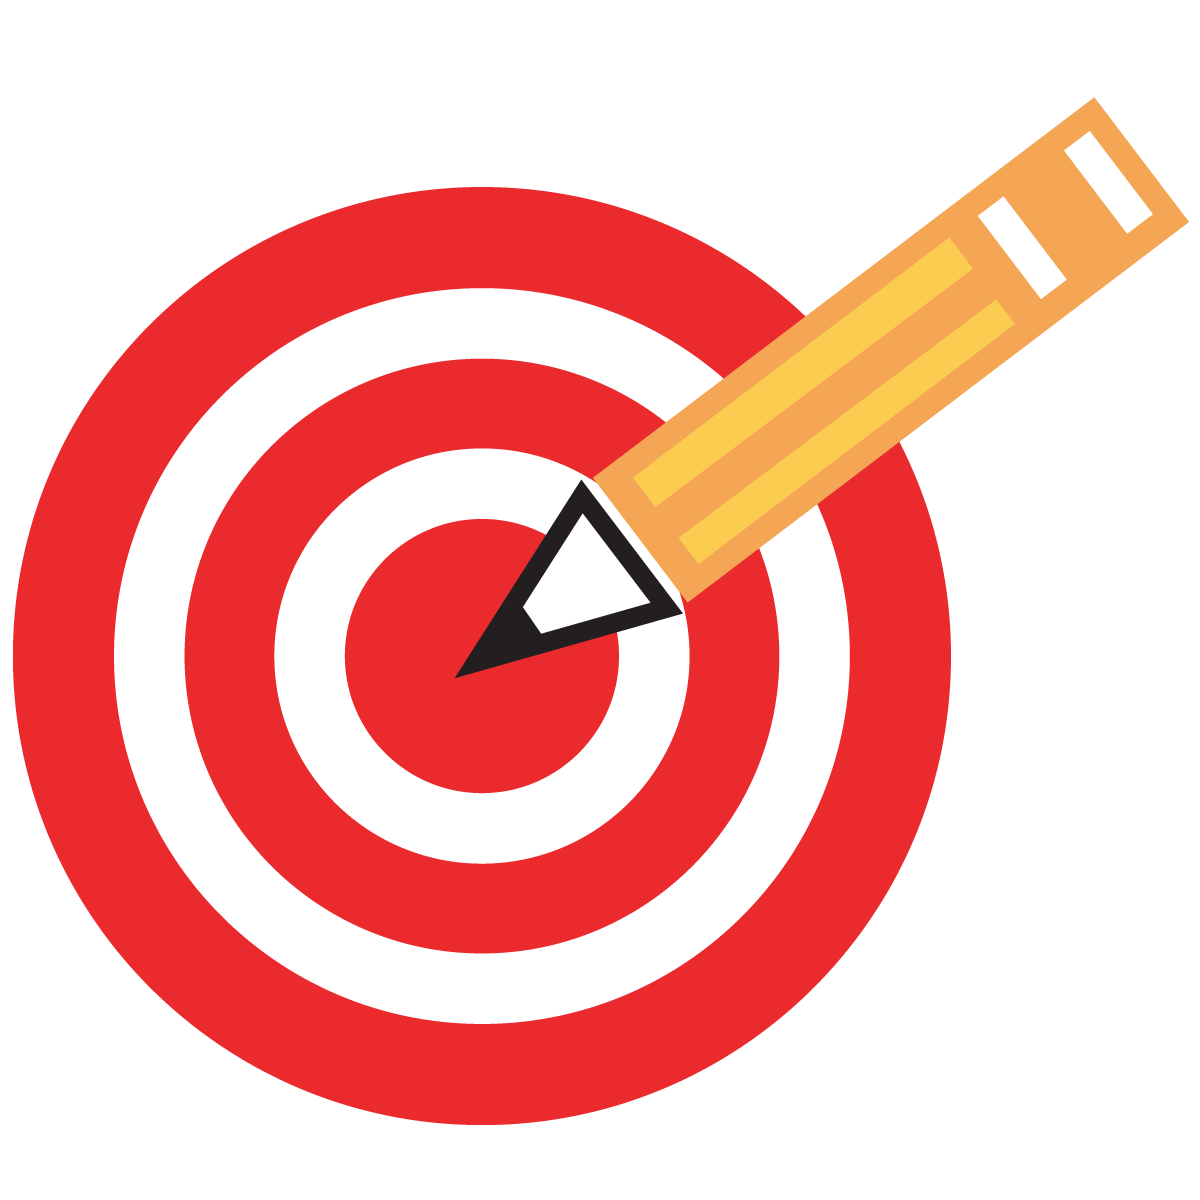 Goals clipart professional. Learning target